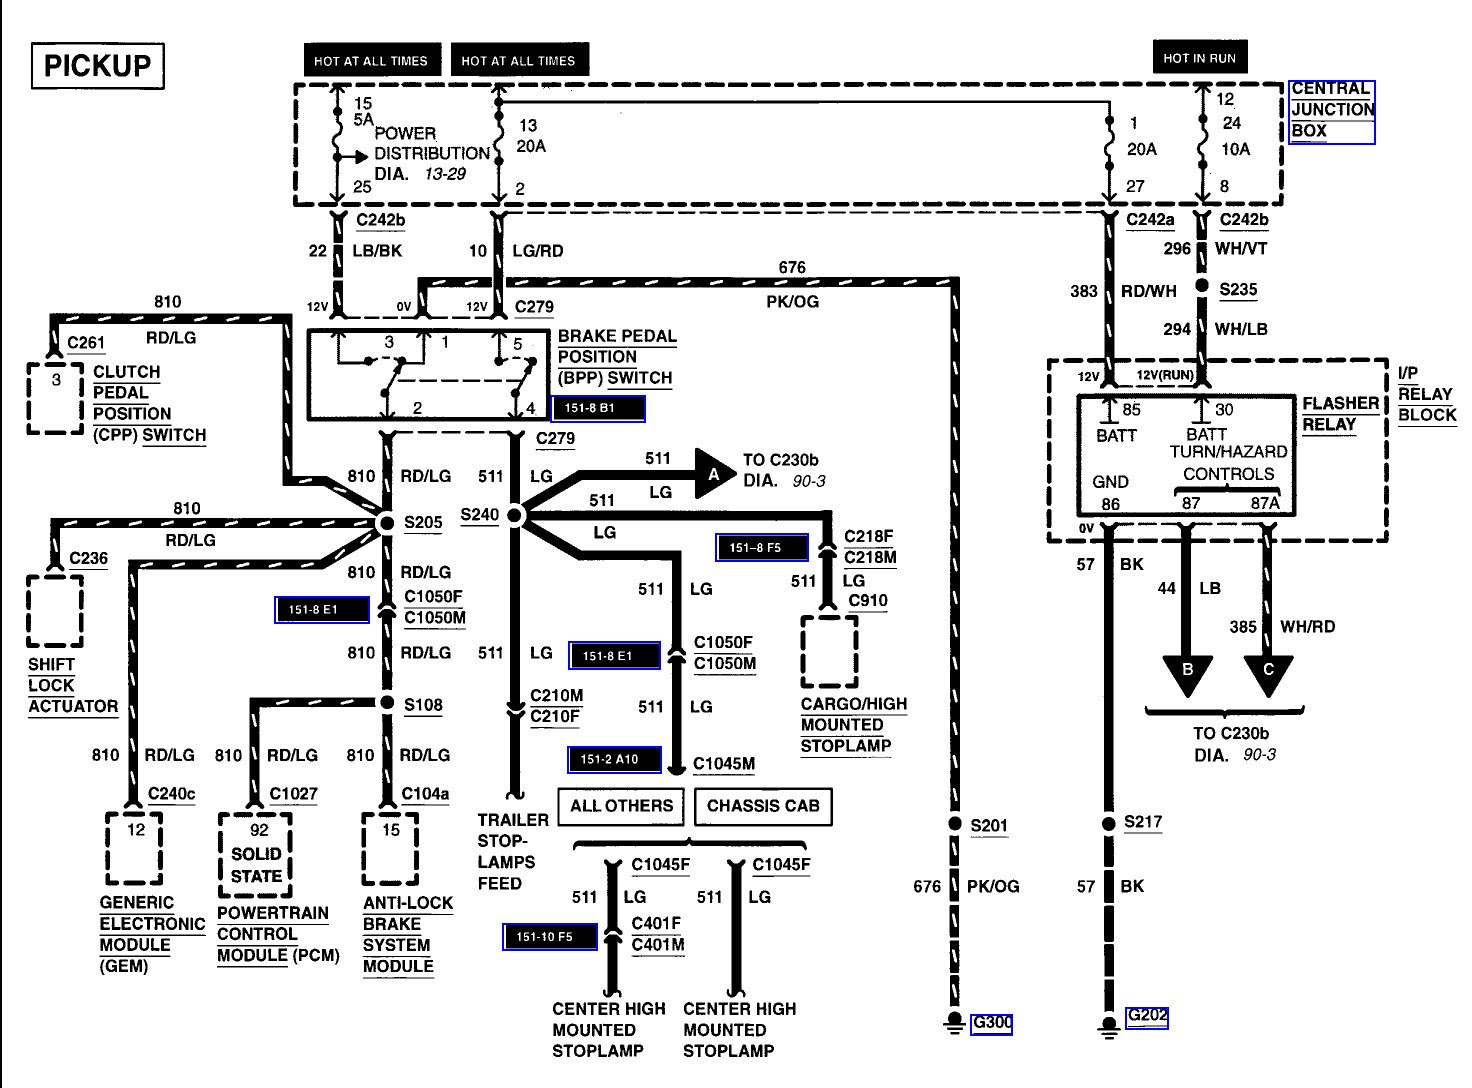 hight resolution of wiring diagram ford f 250 air conditioning data diagram schematic ford f 250 air conditioning diagram besides ford mustang wiring